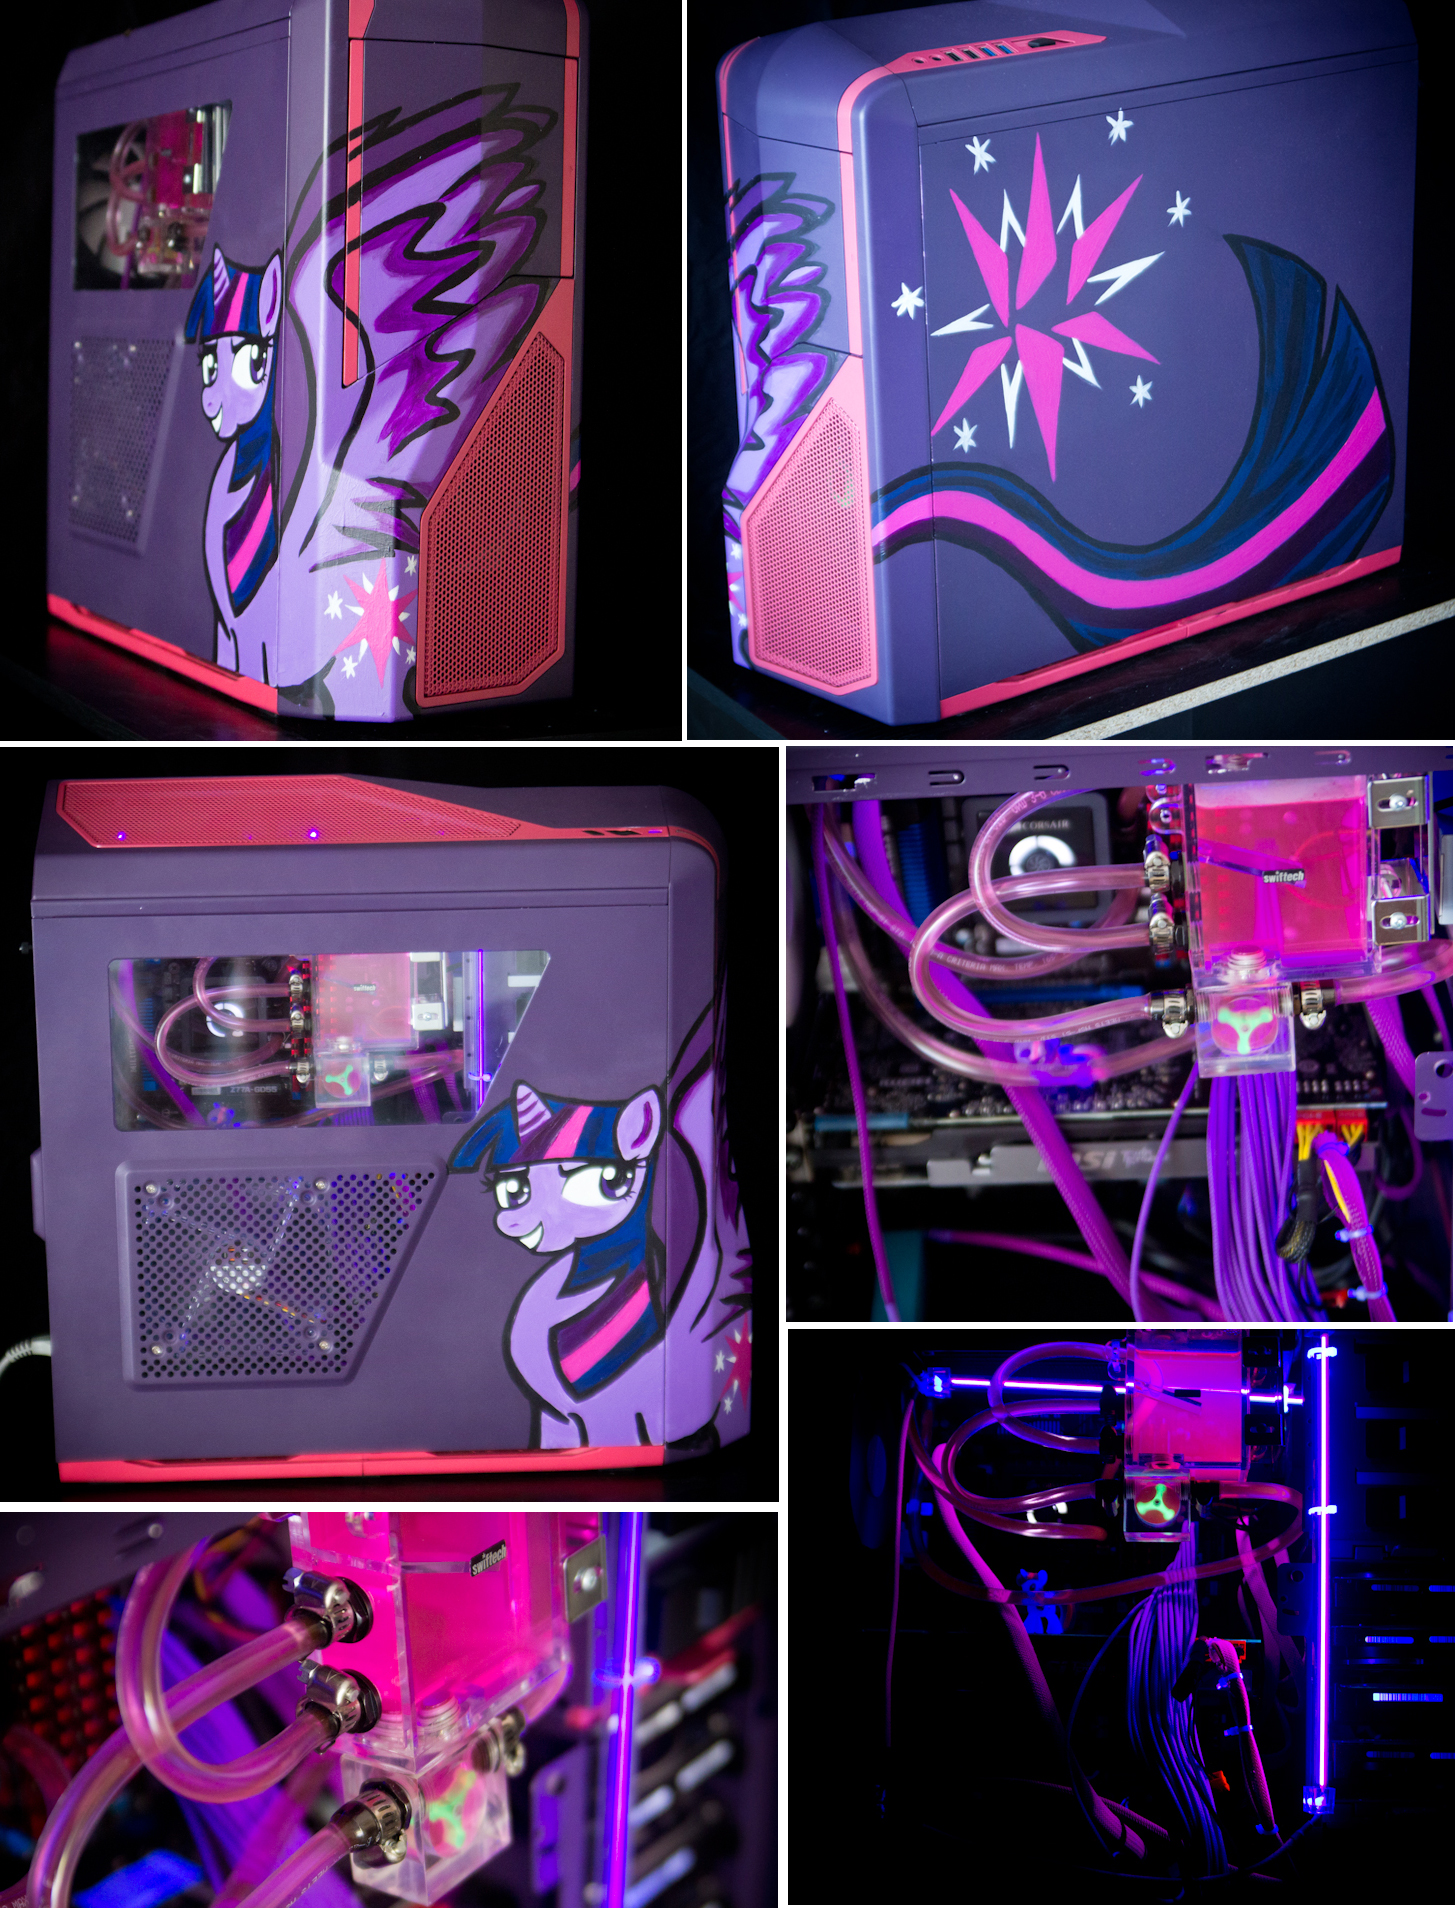 Twilight Sparkle Custom Liquid Cooled Gaming PC By Tao